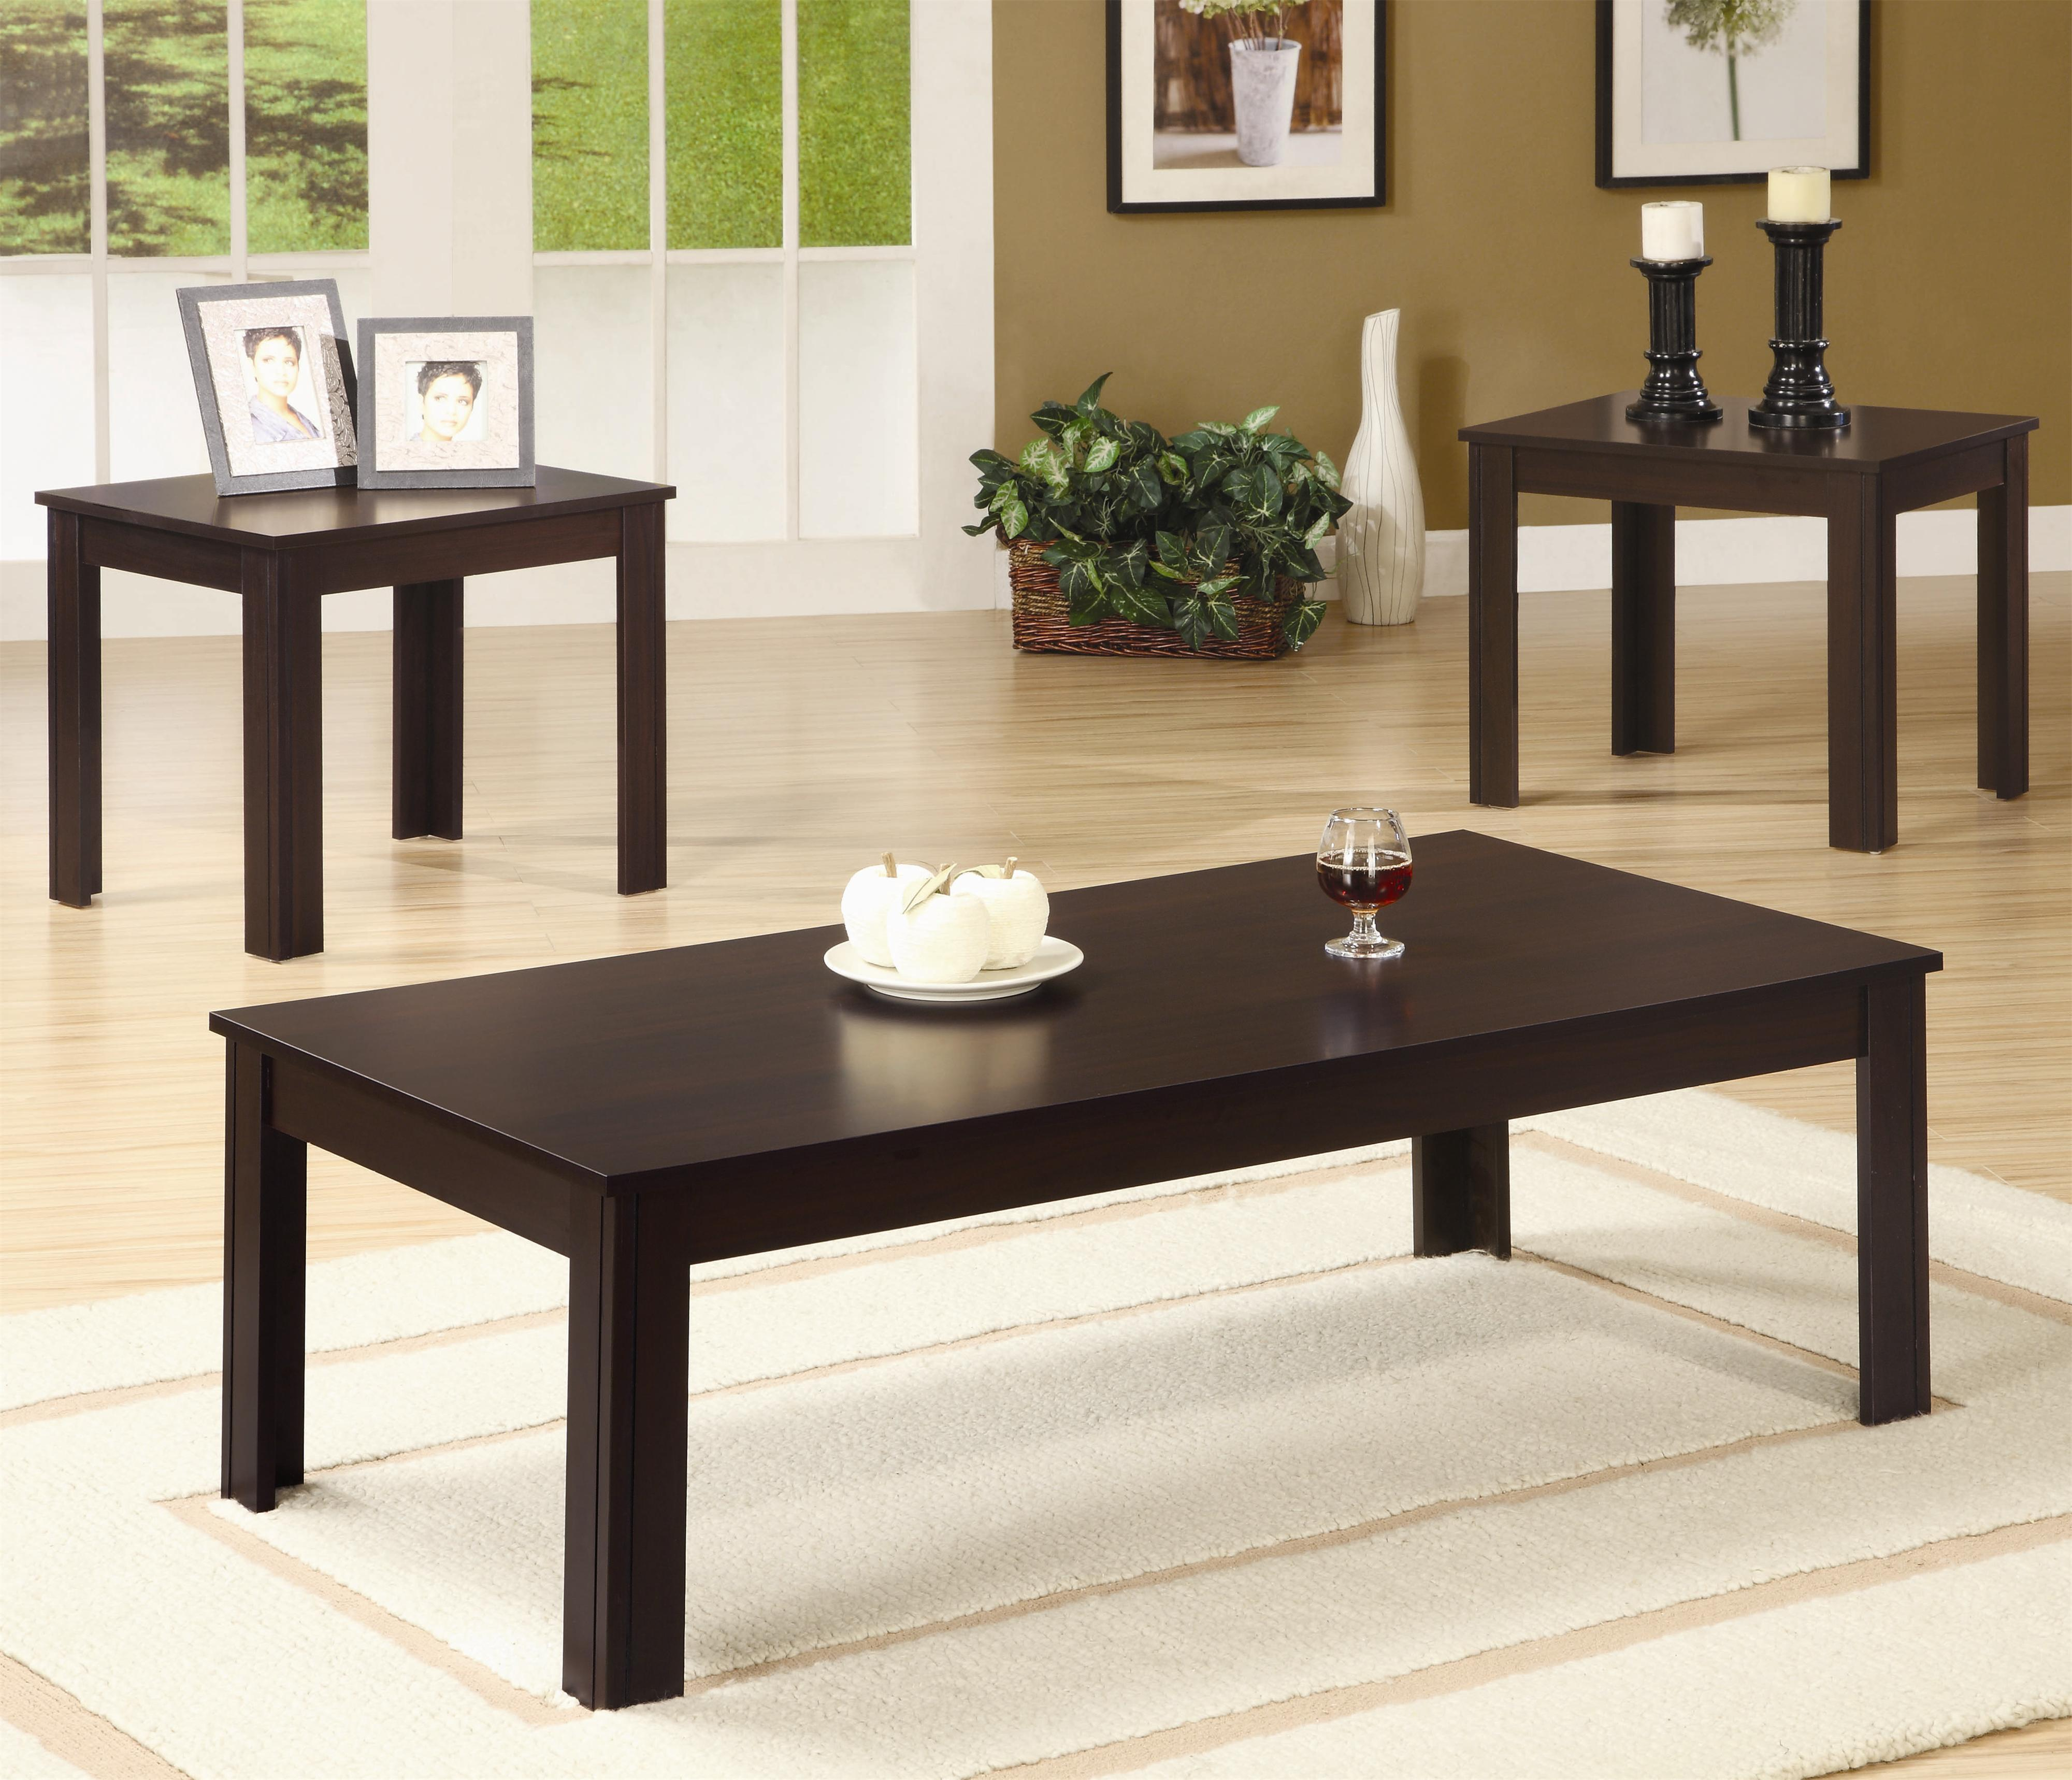 Occasional Table Sets 3 Piece Table Set by Coaster at Northeast Factory Direct